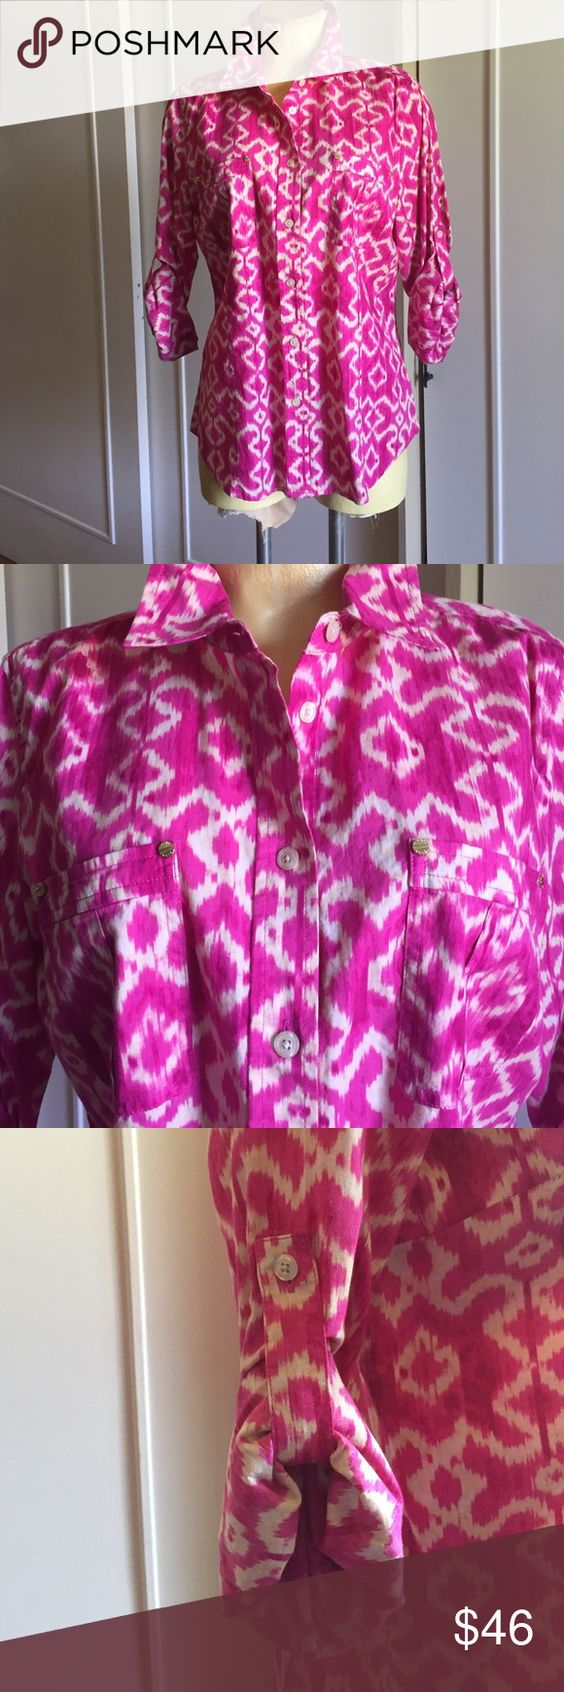 MICHAEL KORS TAILORED BLOUSE FRONT POCKETS Nice fitting,  LS with roll up button, 100% cotton, very soft and light weight.  Coloring is a hot pink and bone almost a magenta, very slightly worn MICHAEL Michael Kors Tops Button Down Shirts